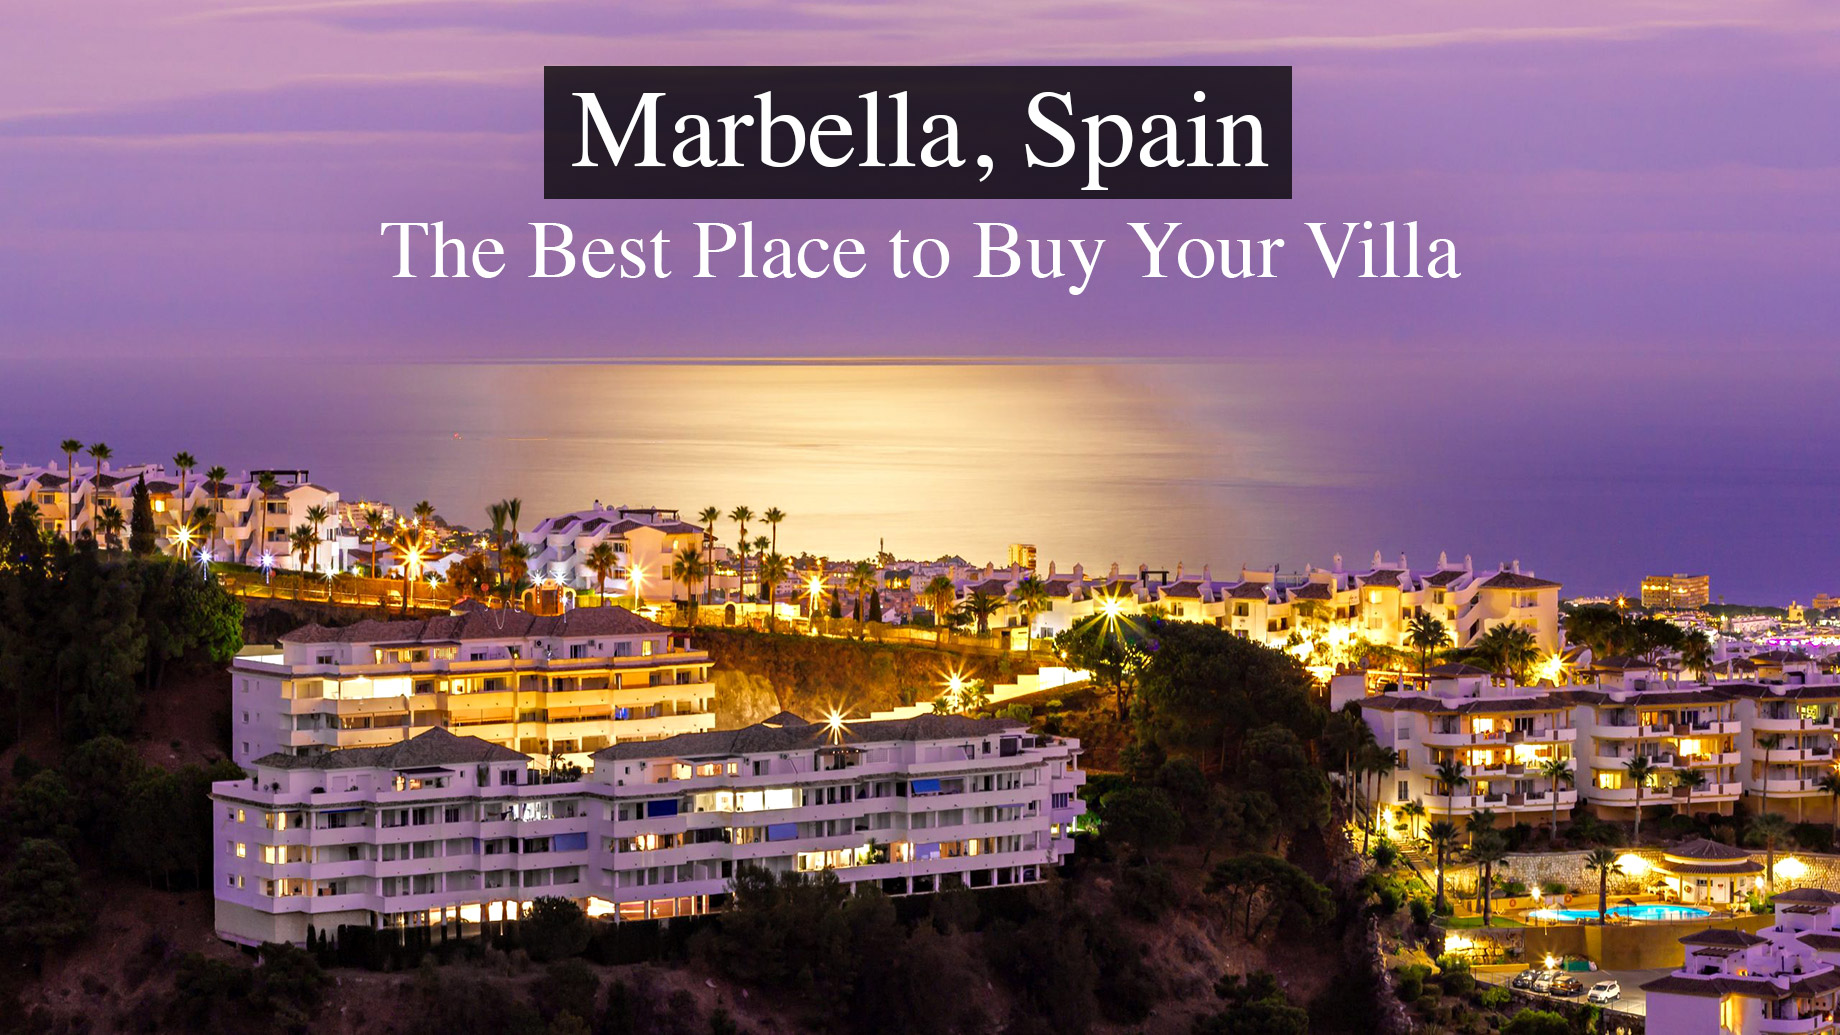 Marbella, Spain - The Best Place to Buy Your Villa in Europe